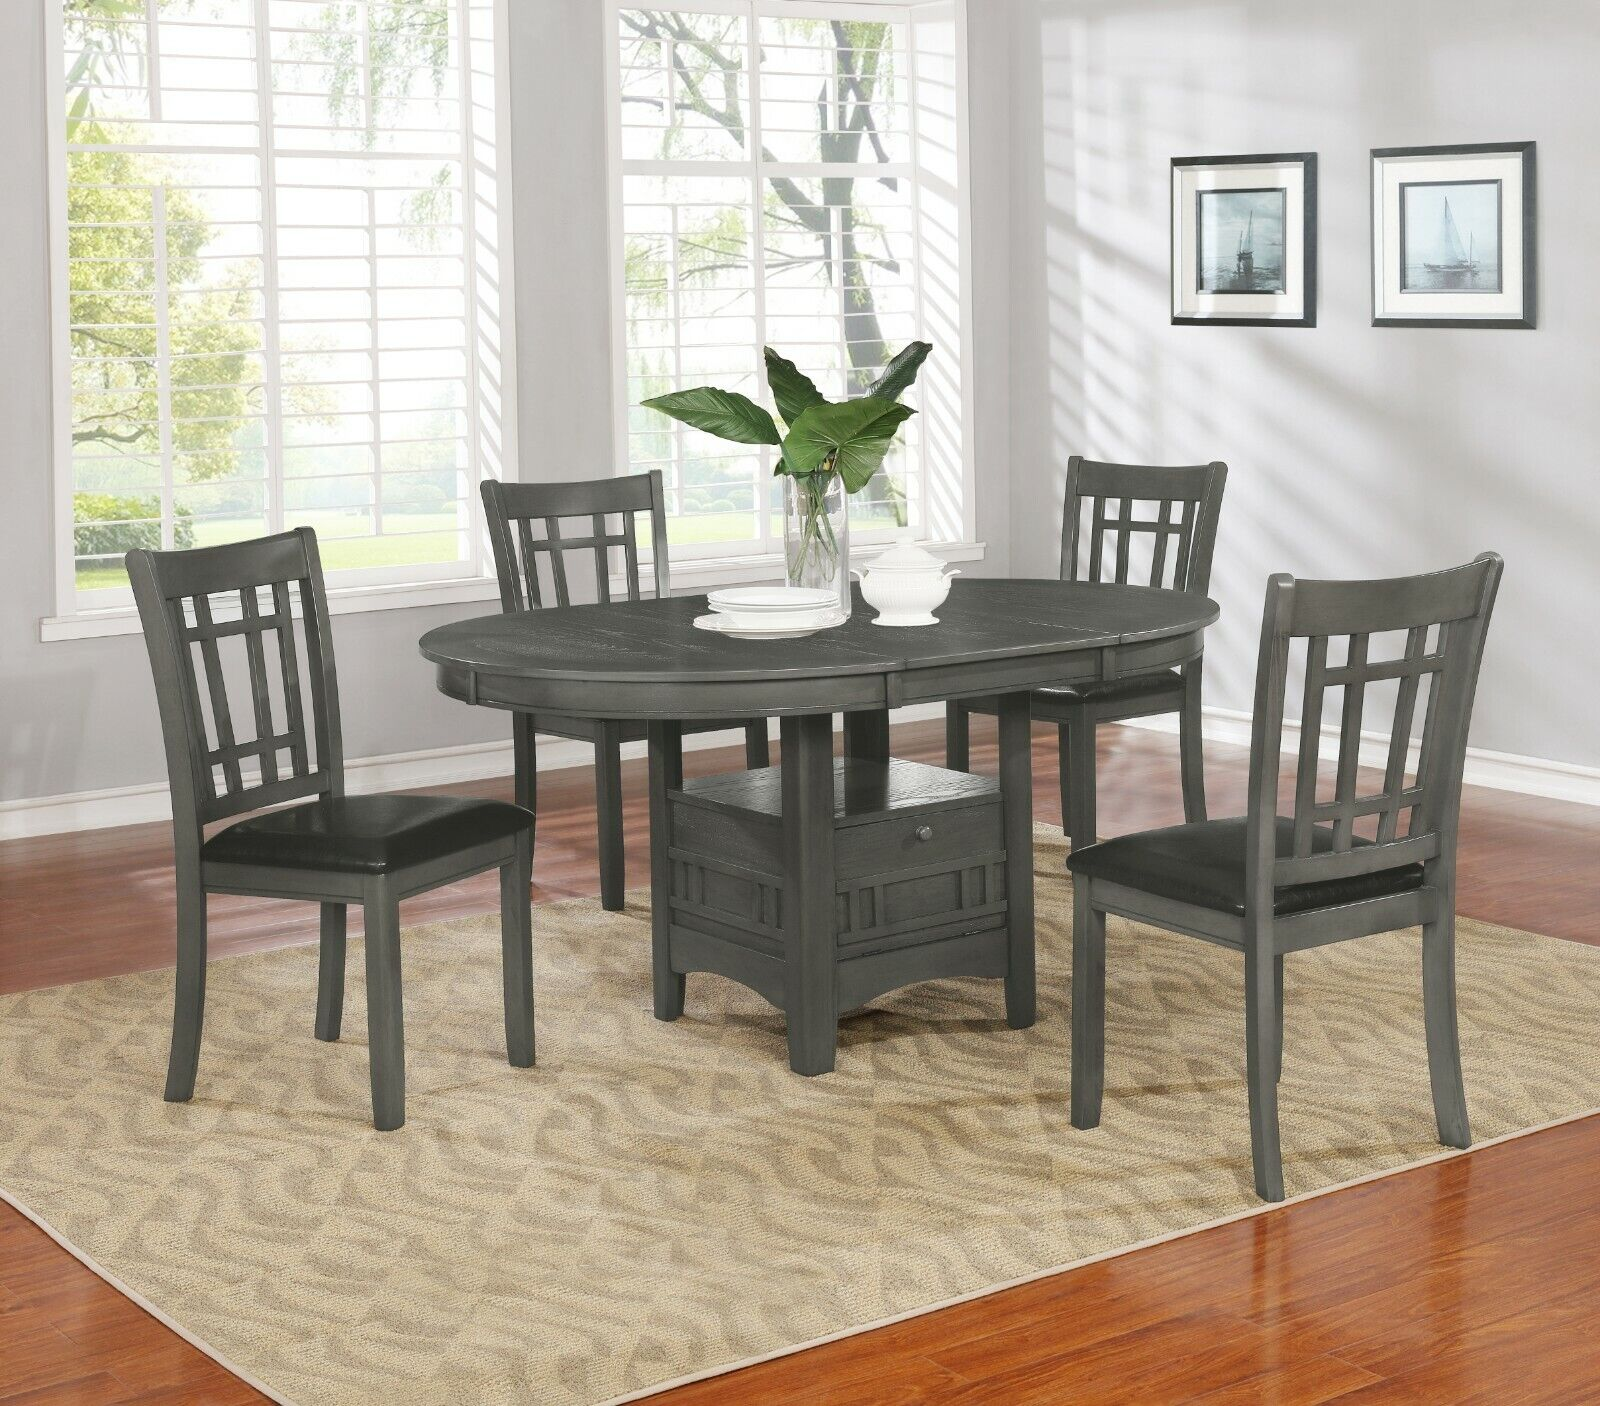 Modern Casual 5 Piece Dining Set with Extension Leaf & Stora